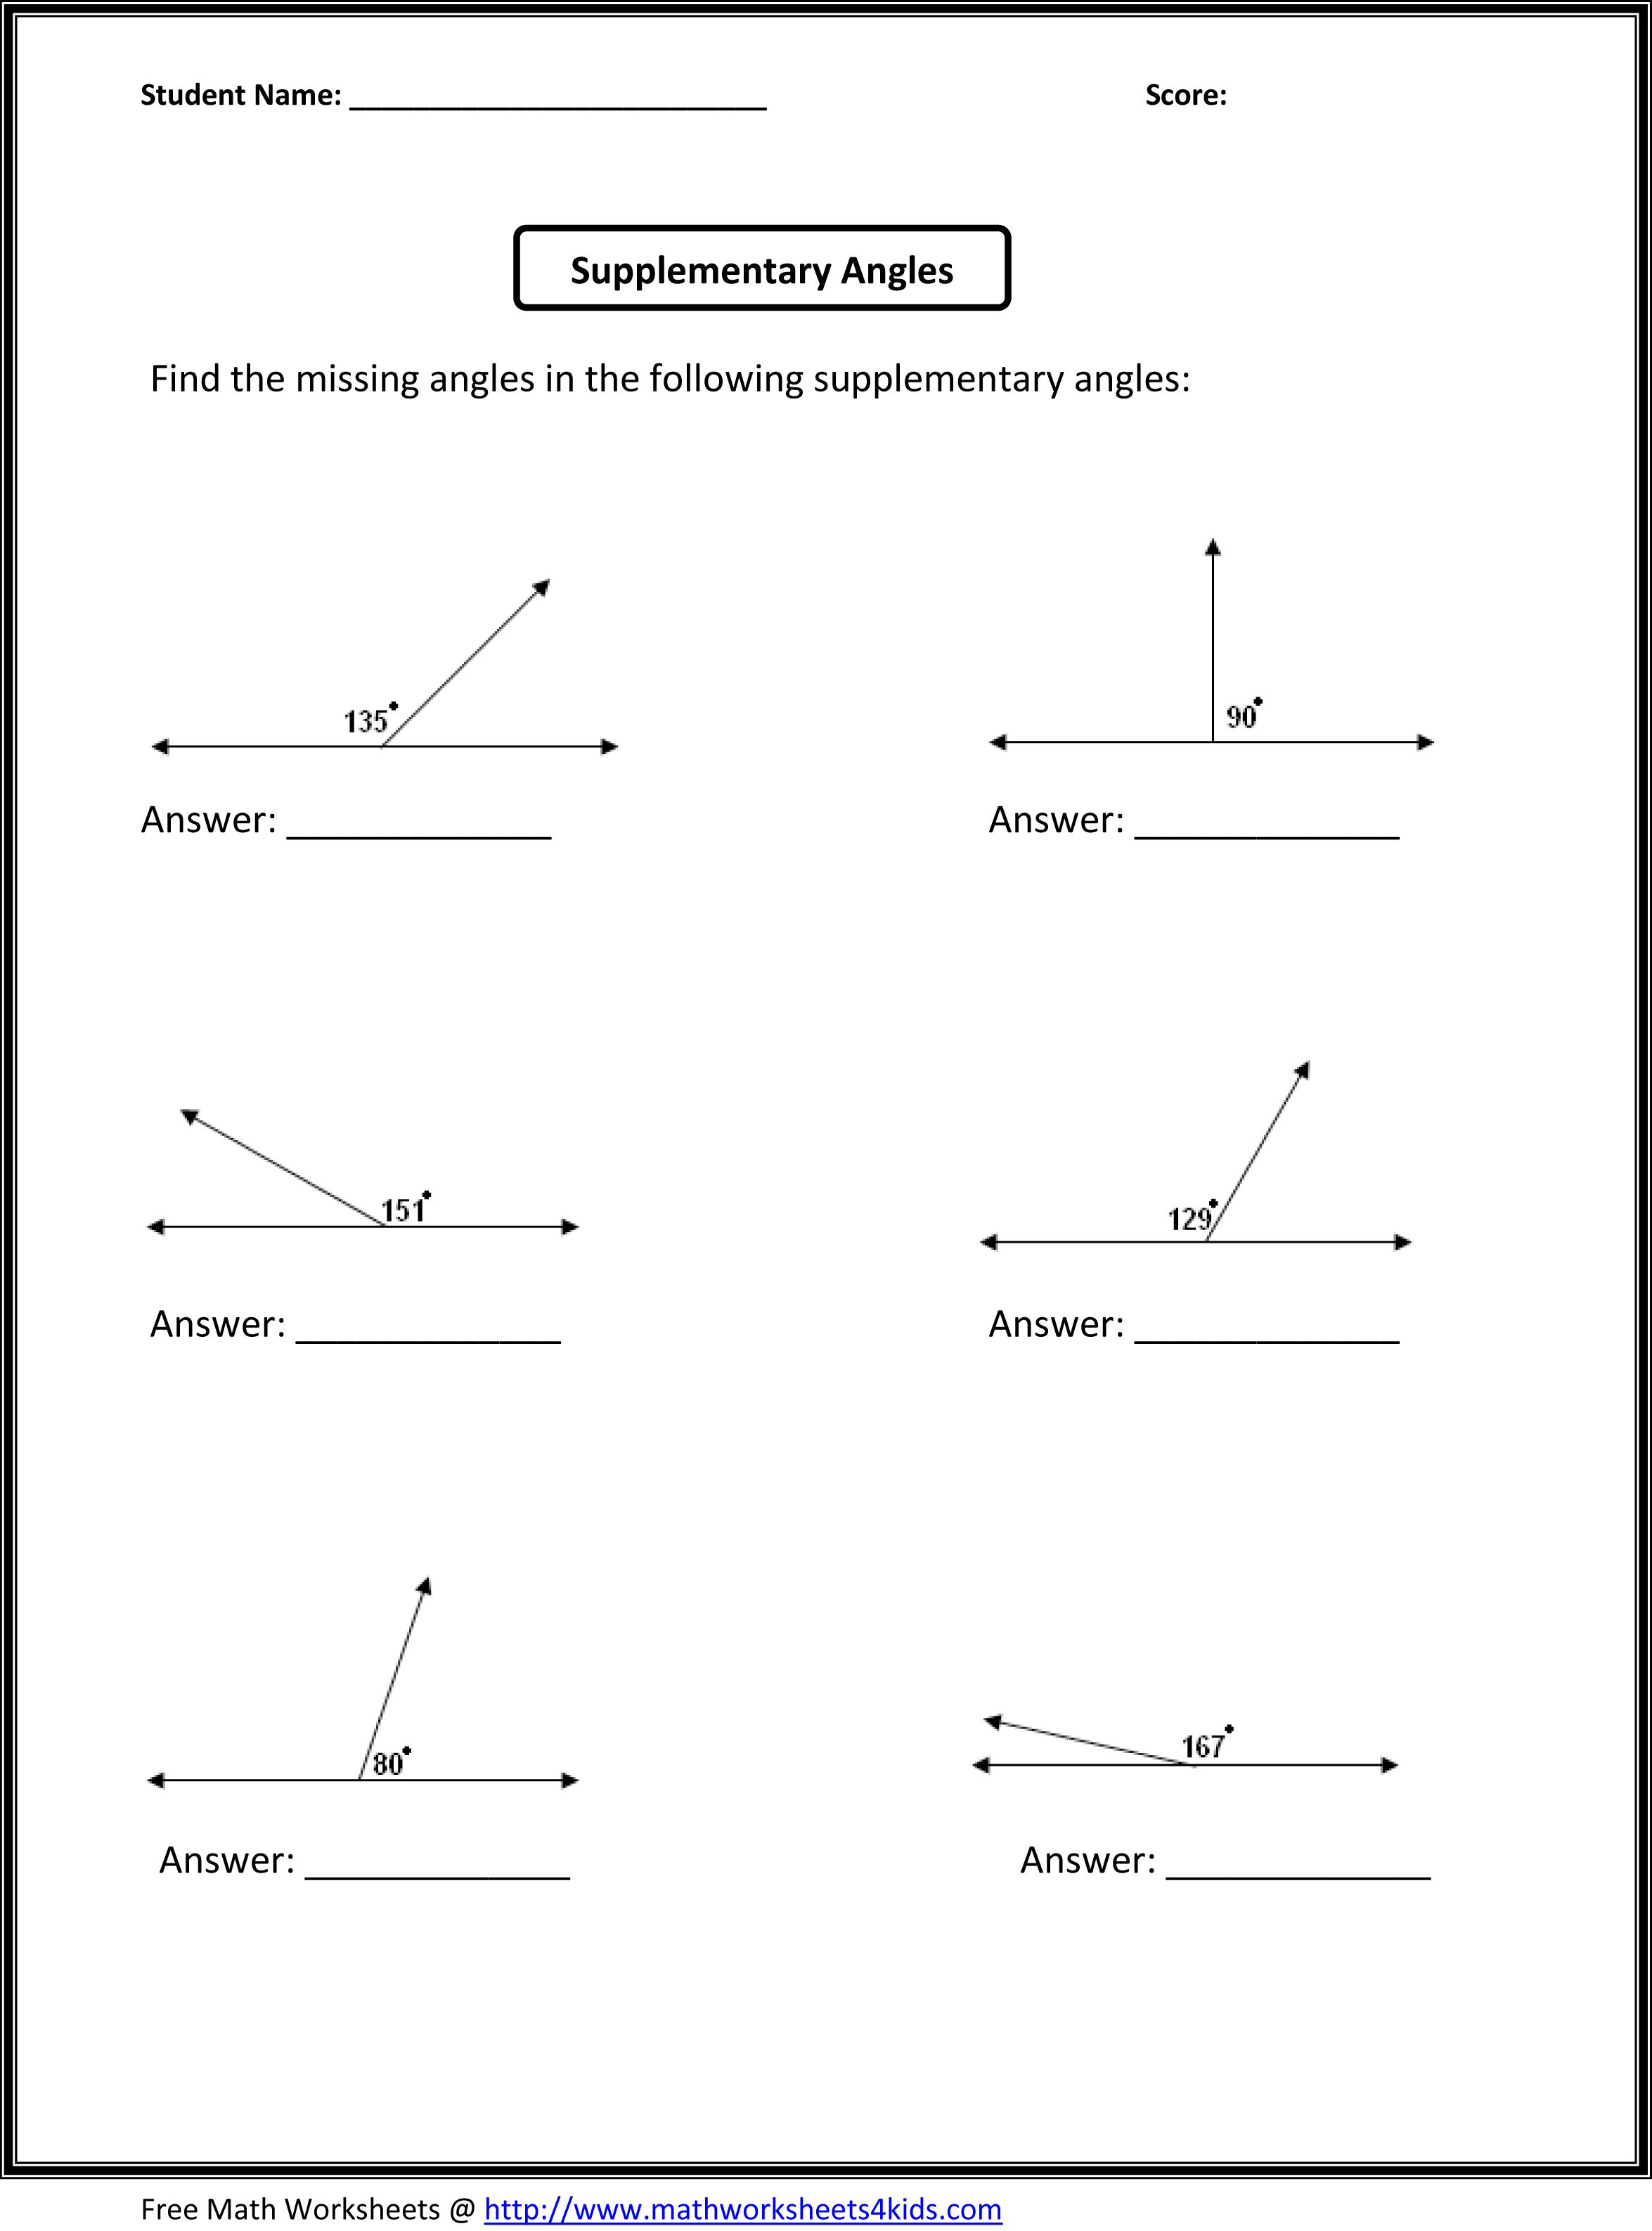 math worksheet : 1000 images about math worksheets on pinterest  addition  : Math Worksheets For Grade 6 Algebra